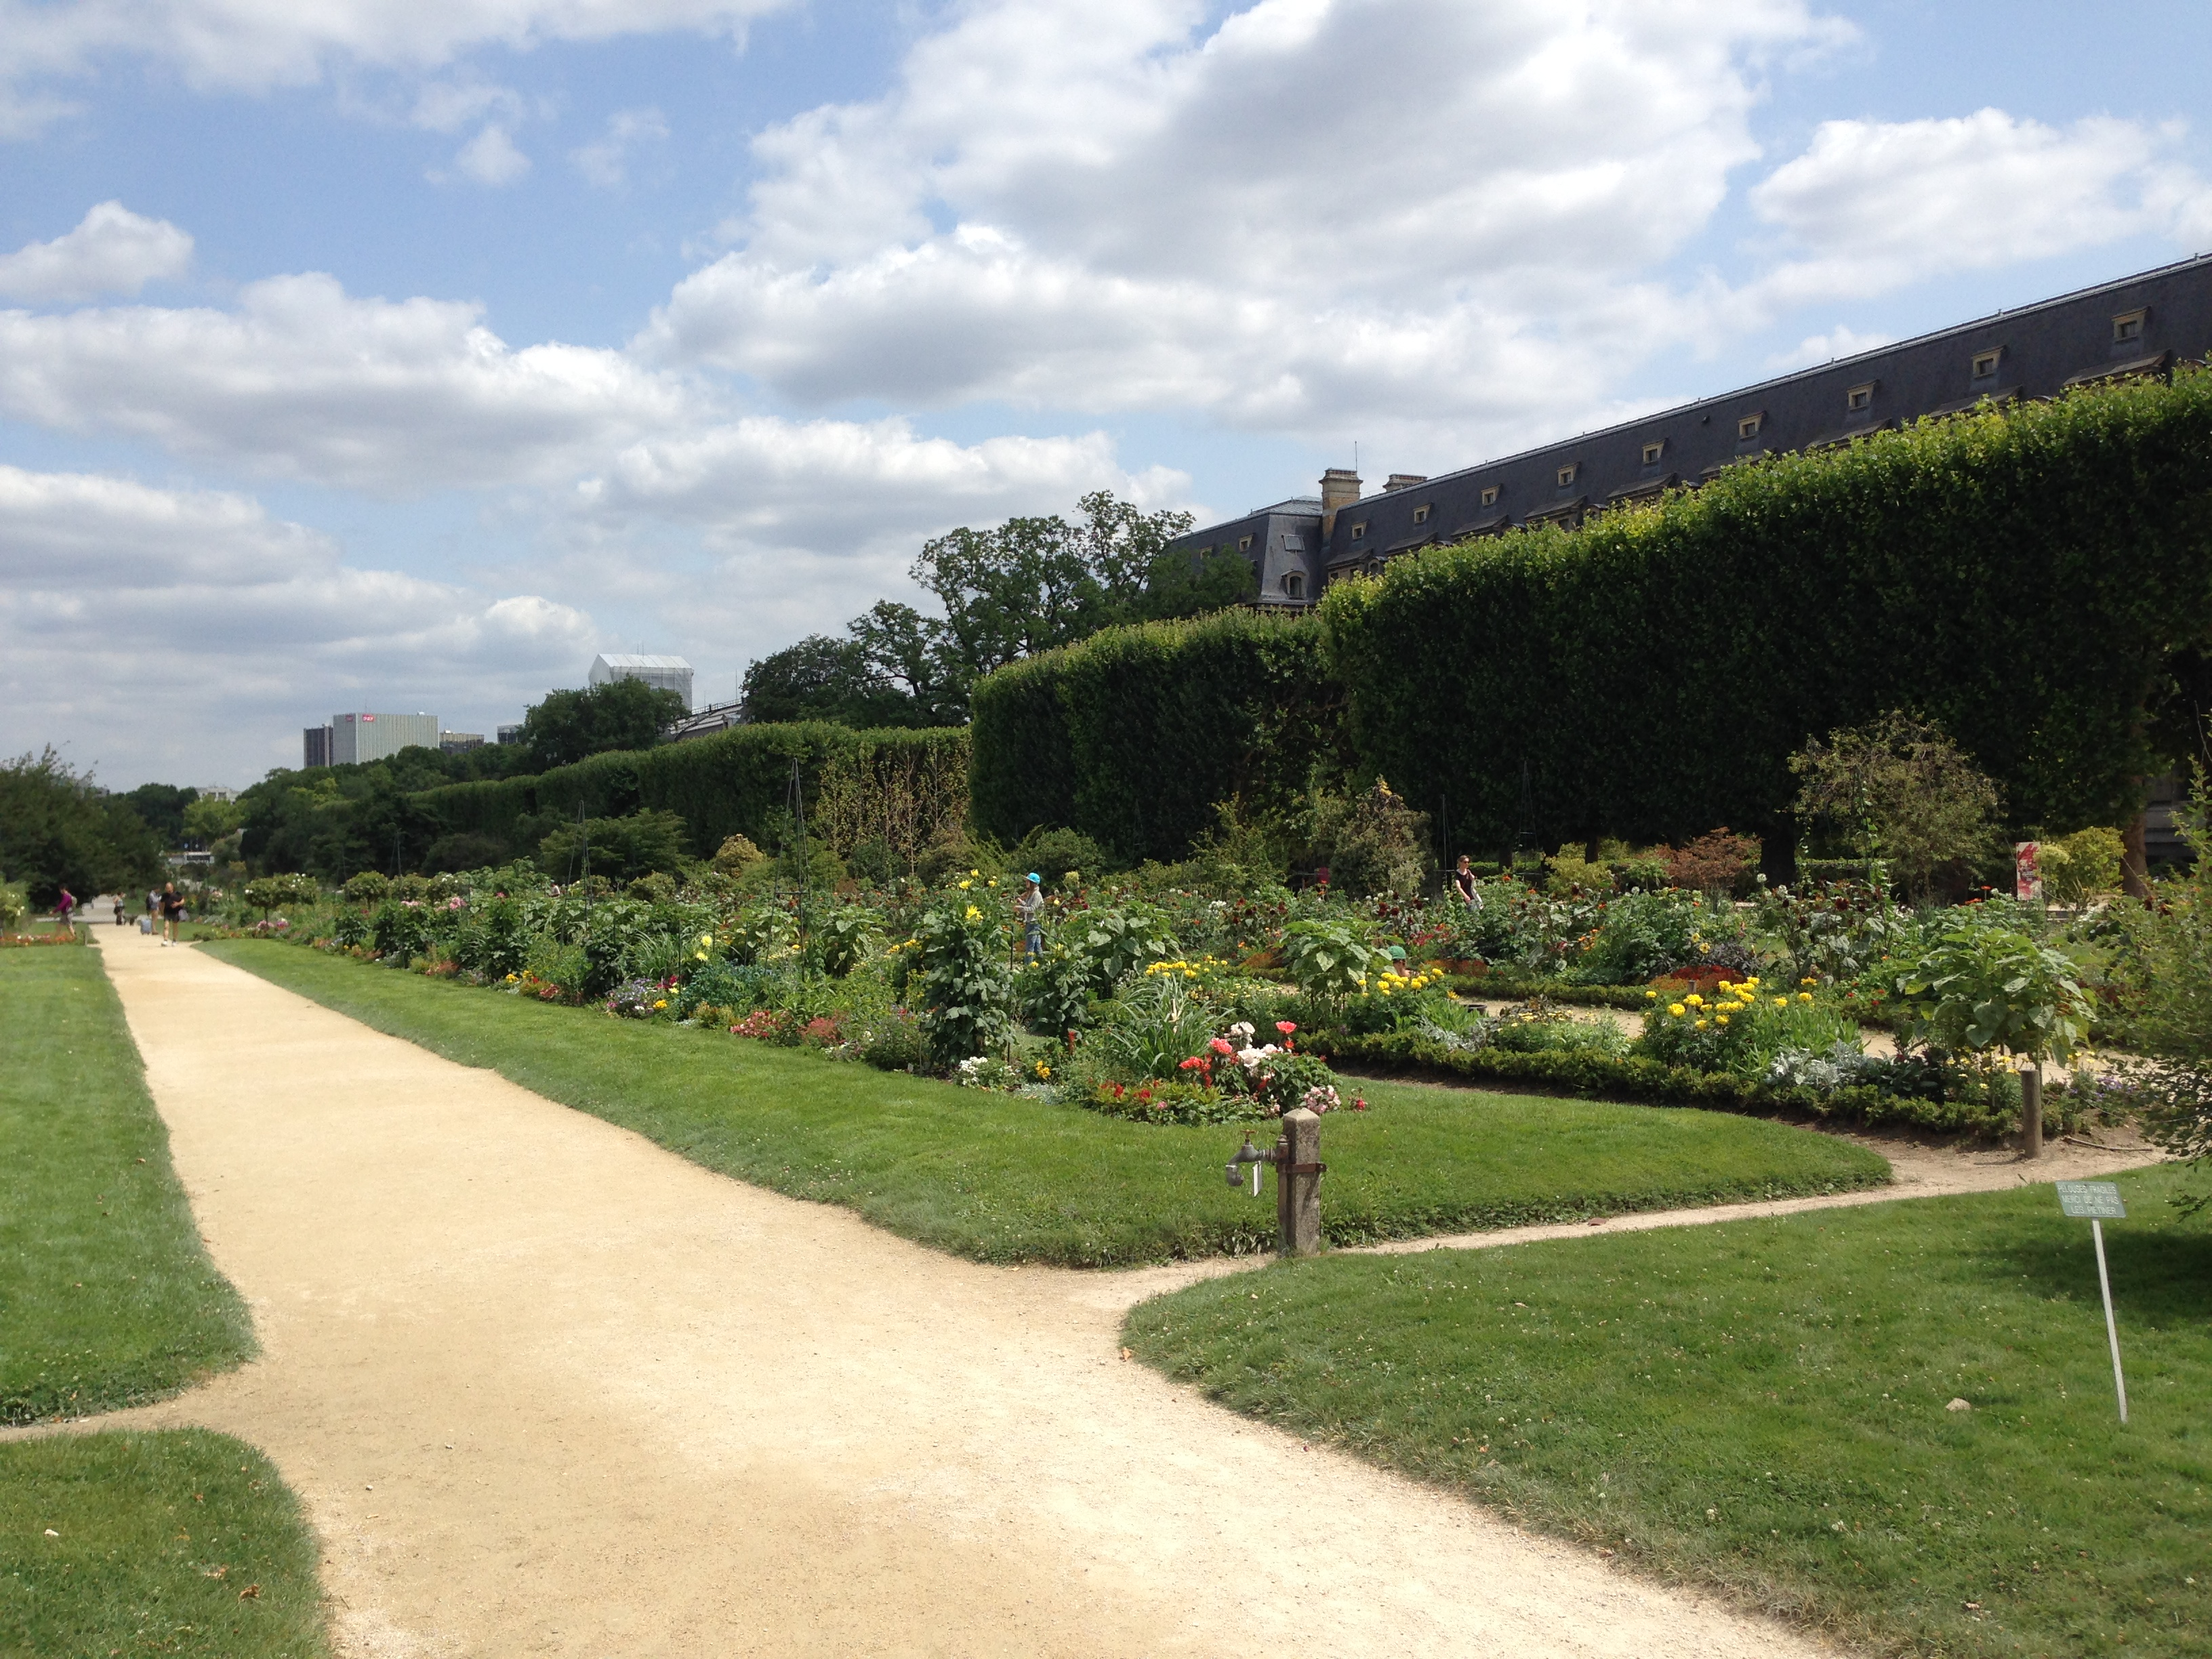 Paris Day by Day A day in the Jardin des Plantes